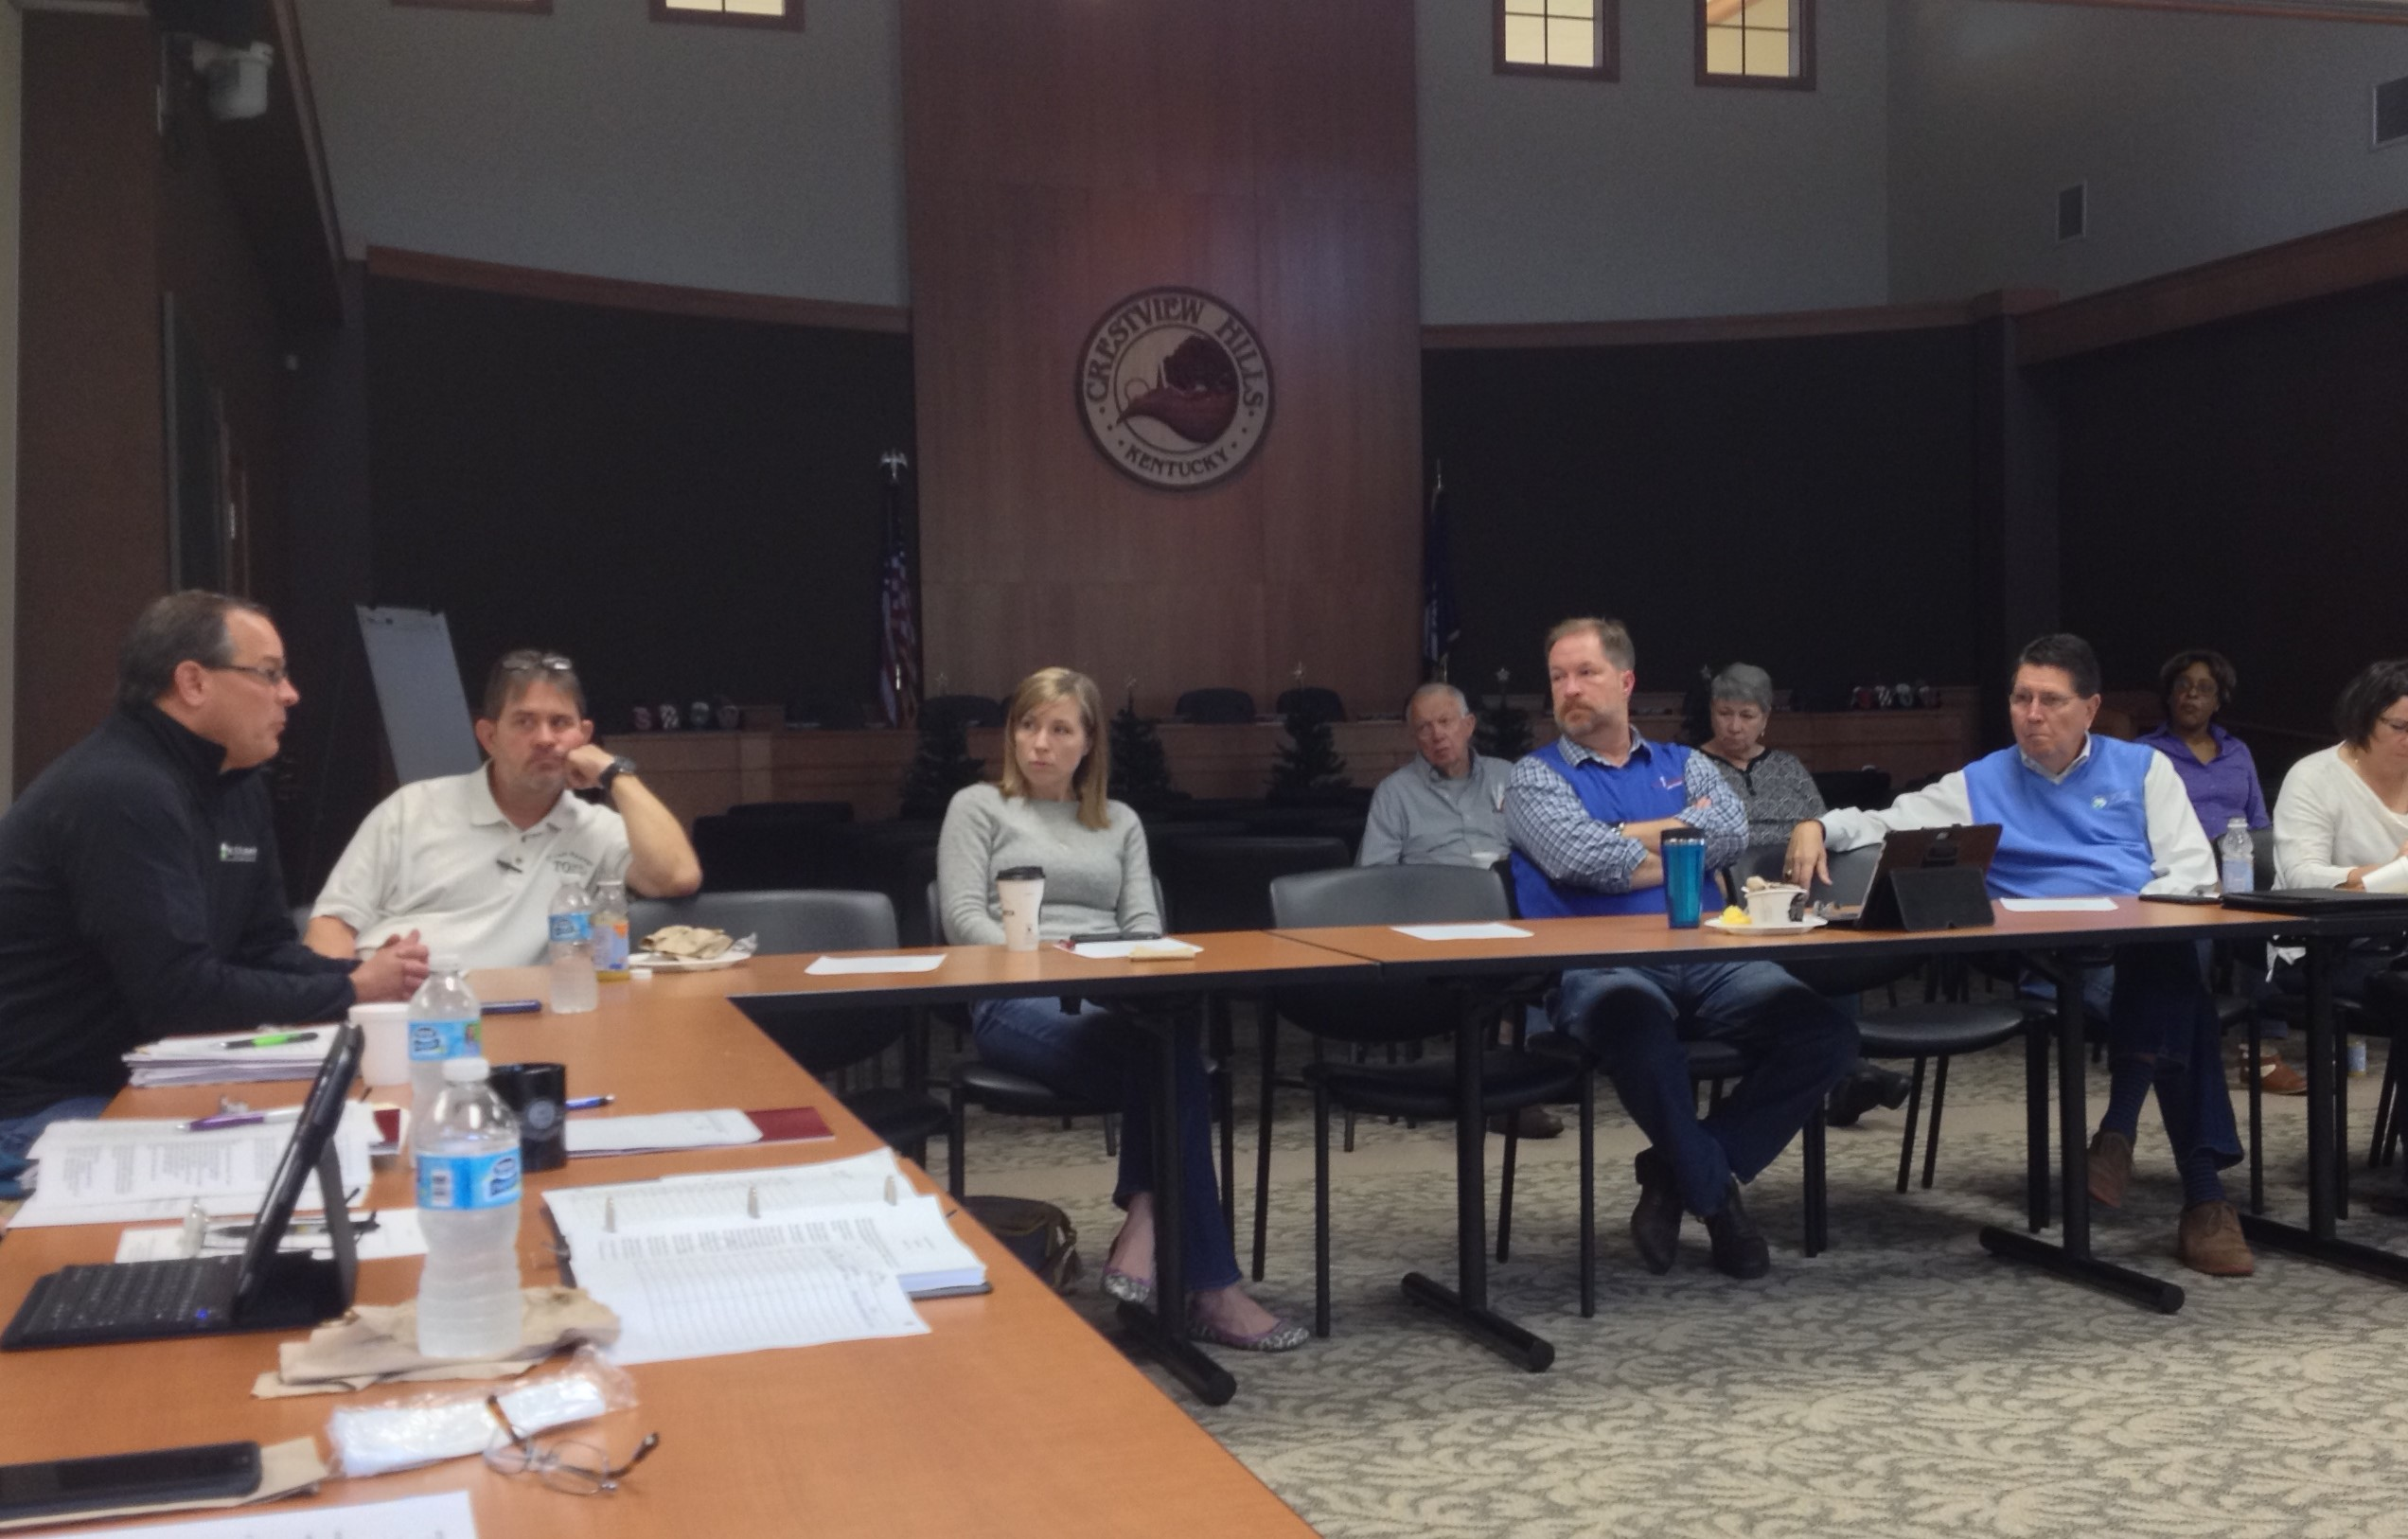 St. Elizabeth Healthcare CEO Garren Colvin lays out his case in support of a needle exchange program at Saturday's Kenton County Mayors' Meeting (photo by Mark Hansel).